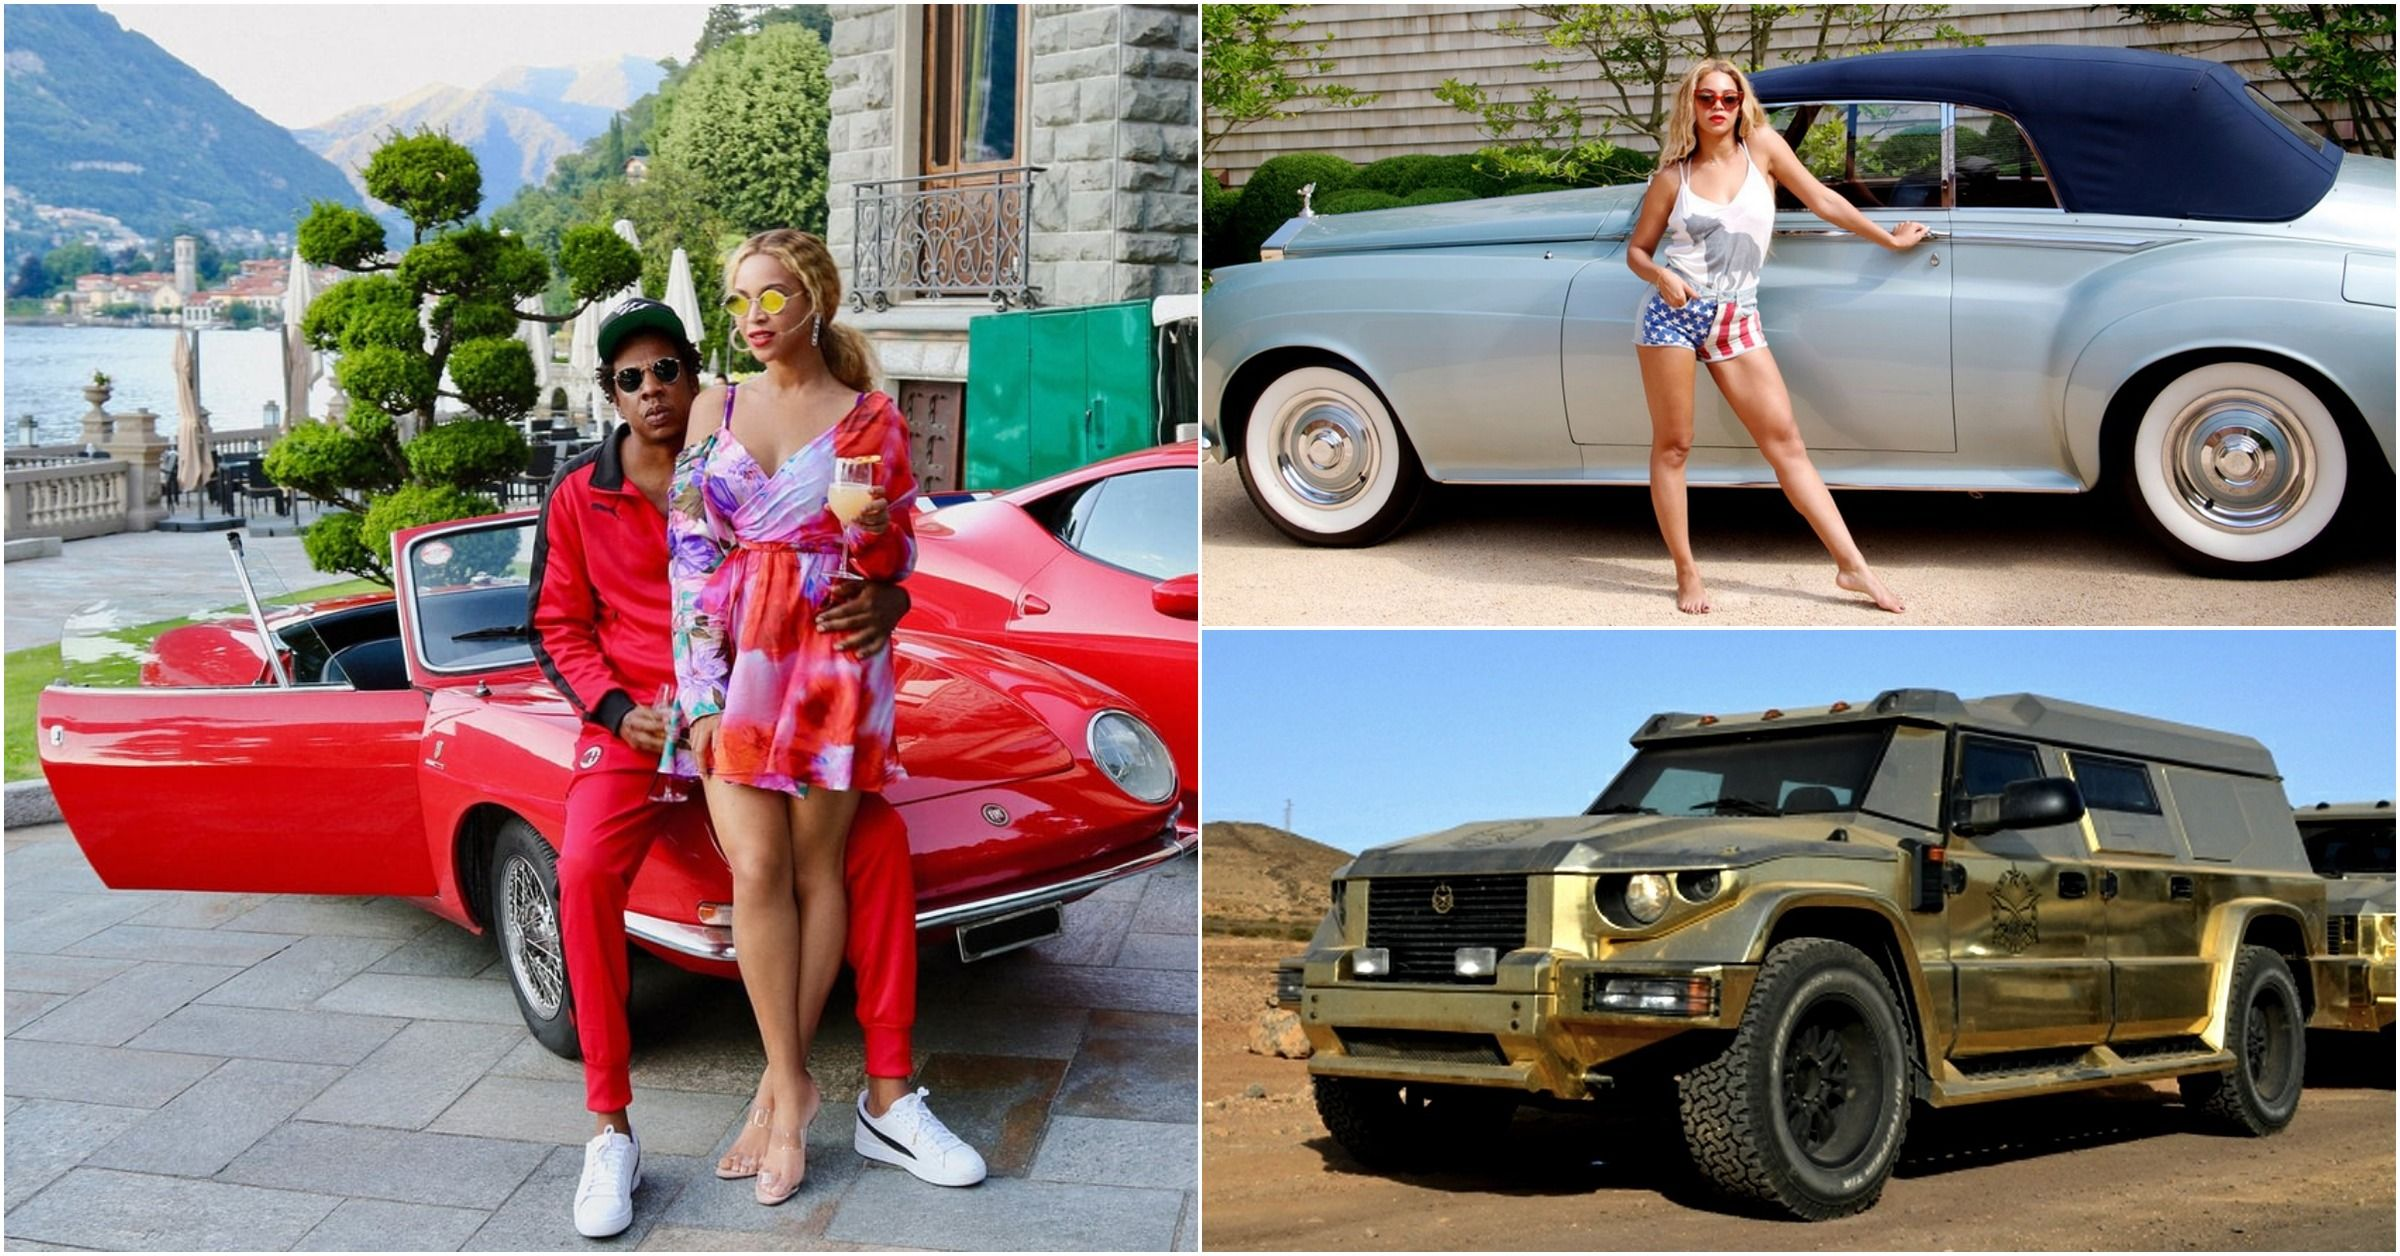 15 Stunning Images Of Jay-Z And Beyonce's Car Collection